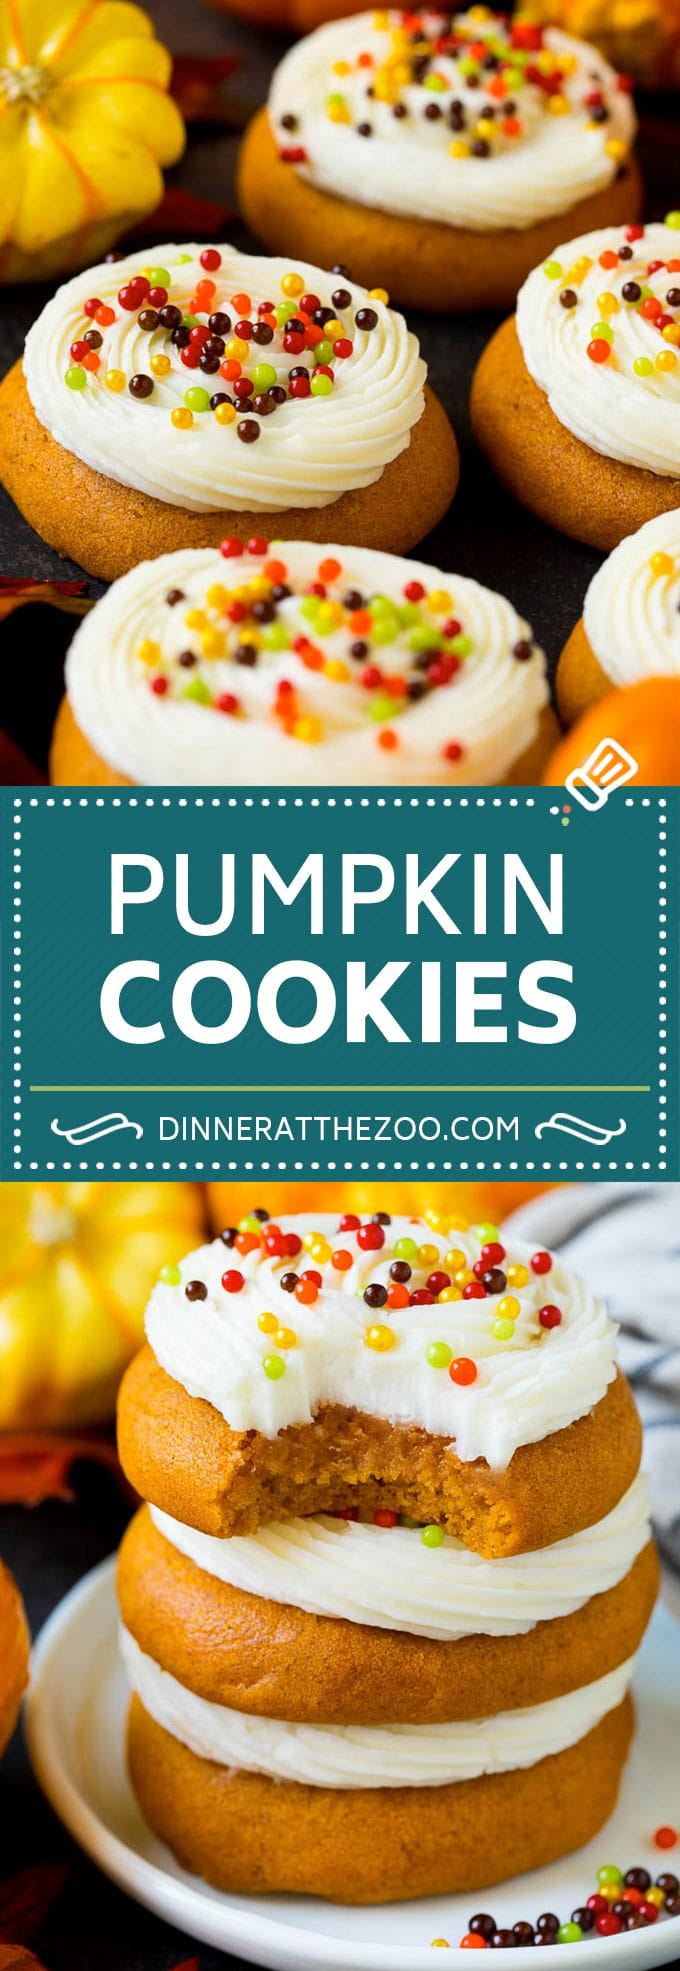 These soft pumpkin cookies bake up light and fluffy, and are topped with a decadent cream cheese frosting and colorful sprinkles.